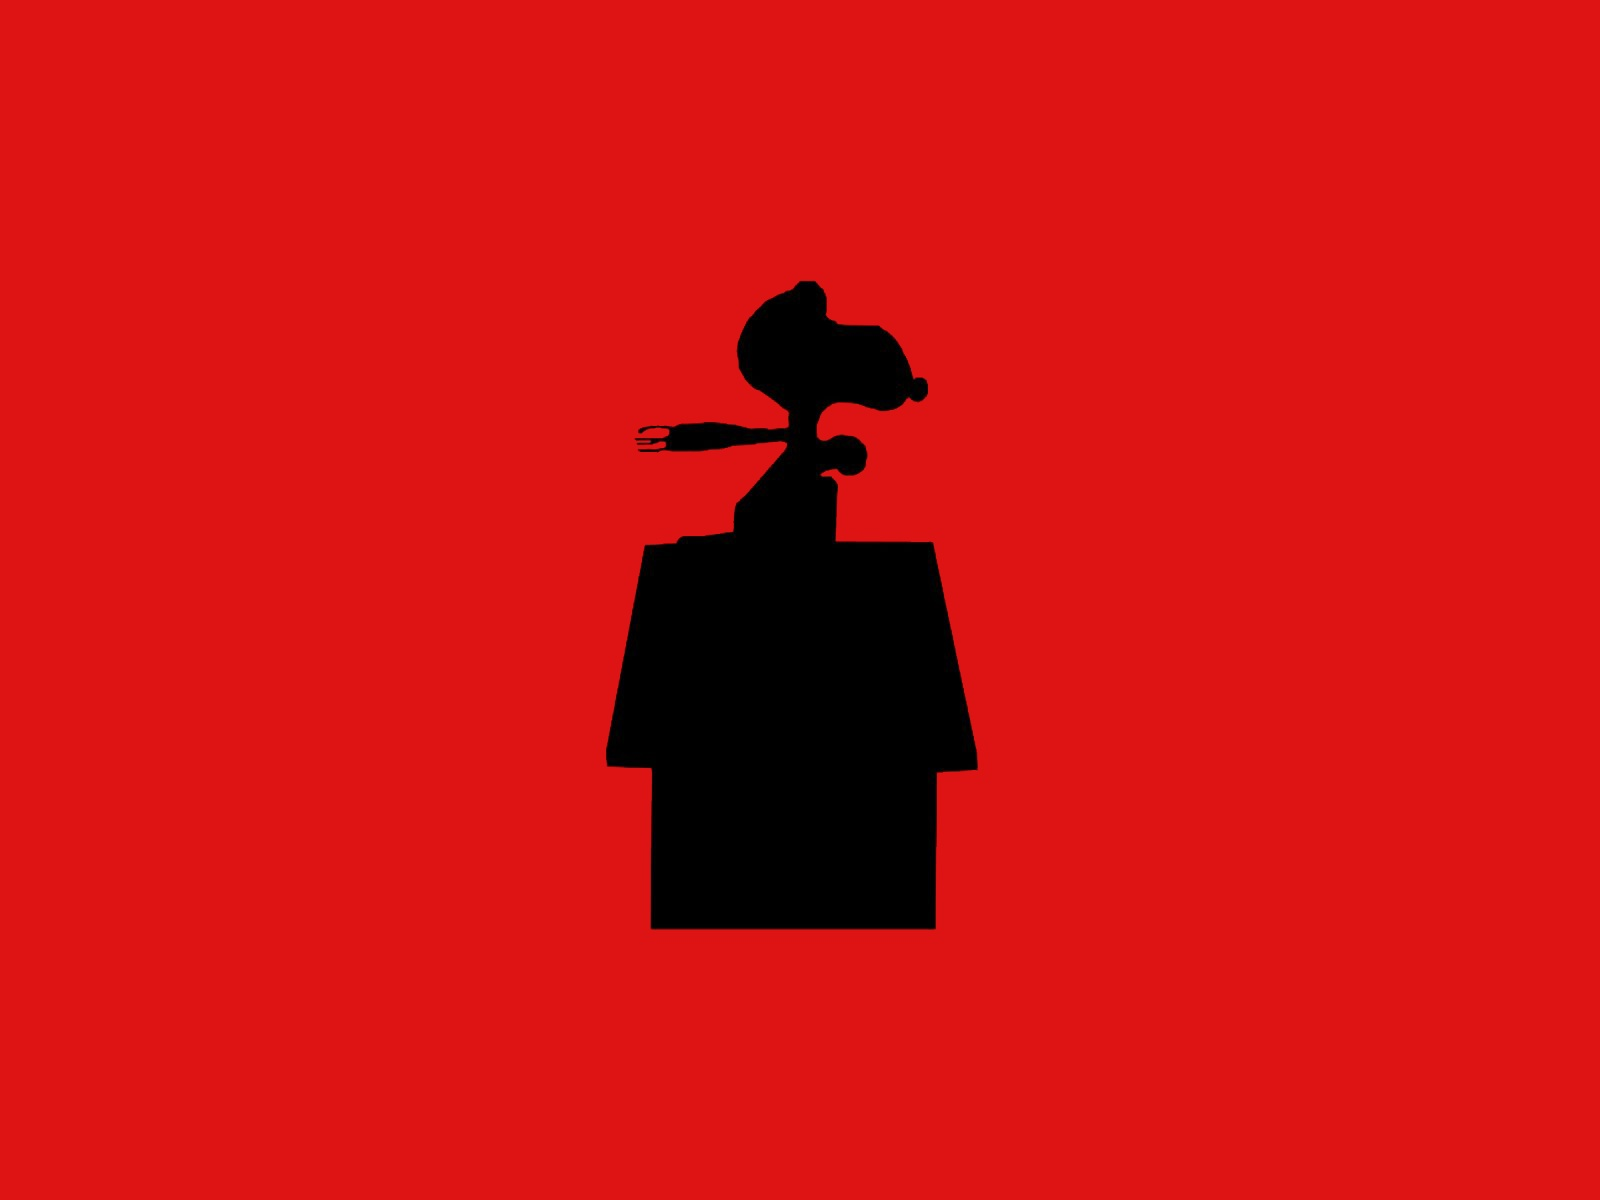 Snoopy Red Baron Wallpaper